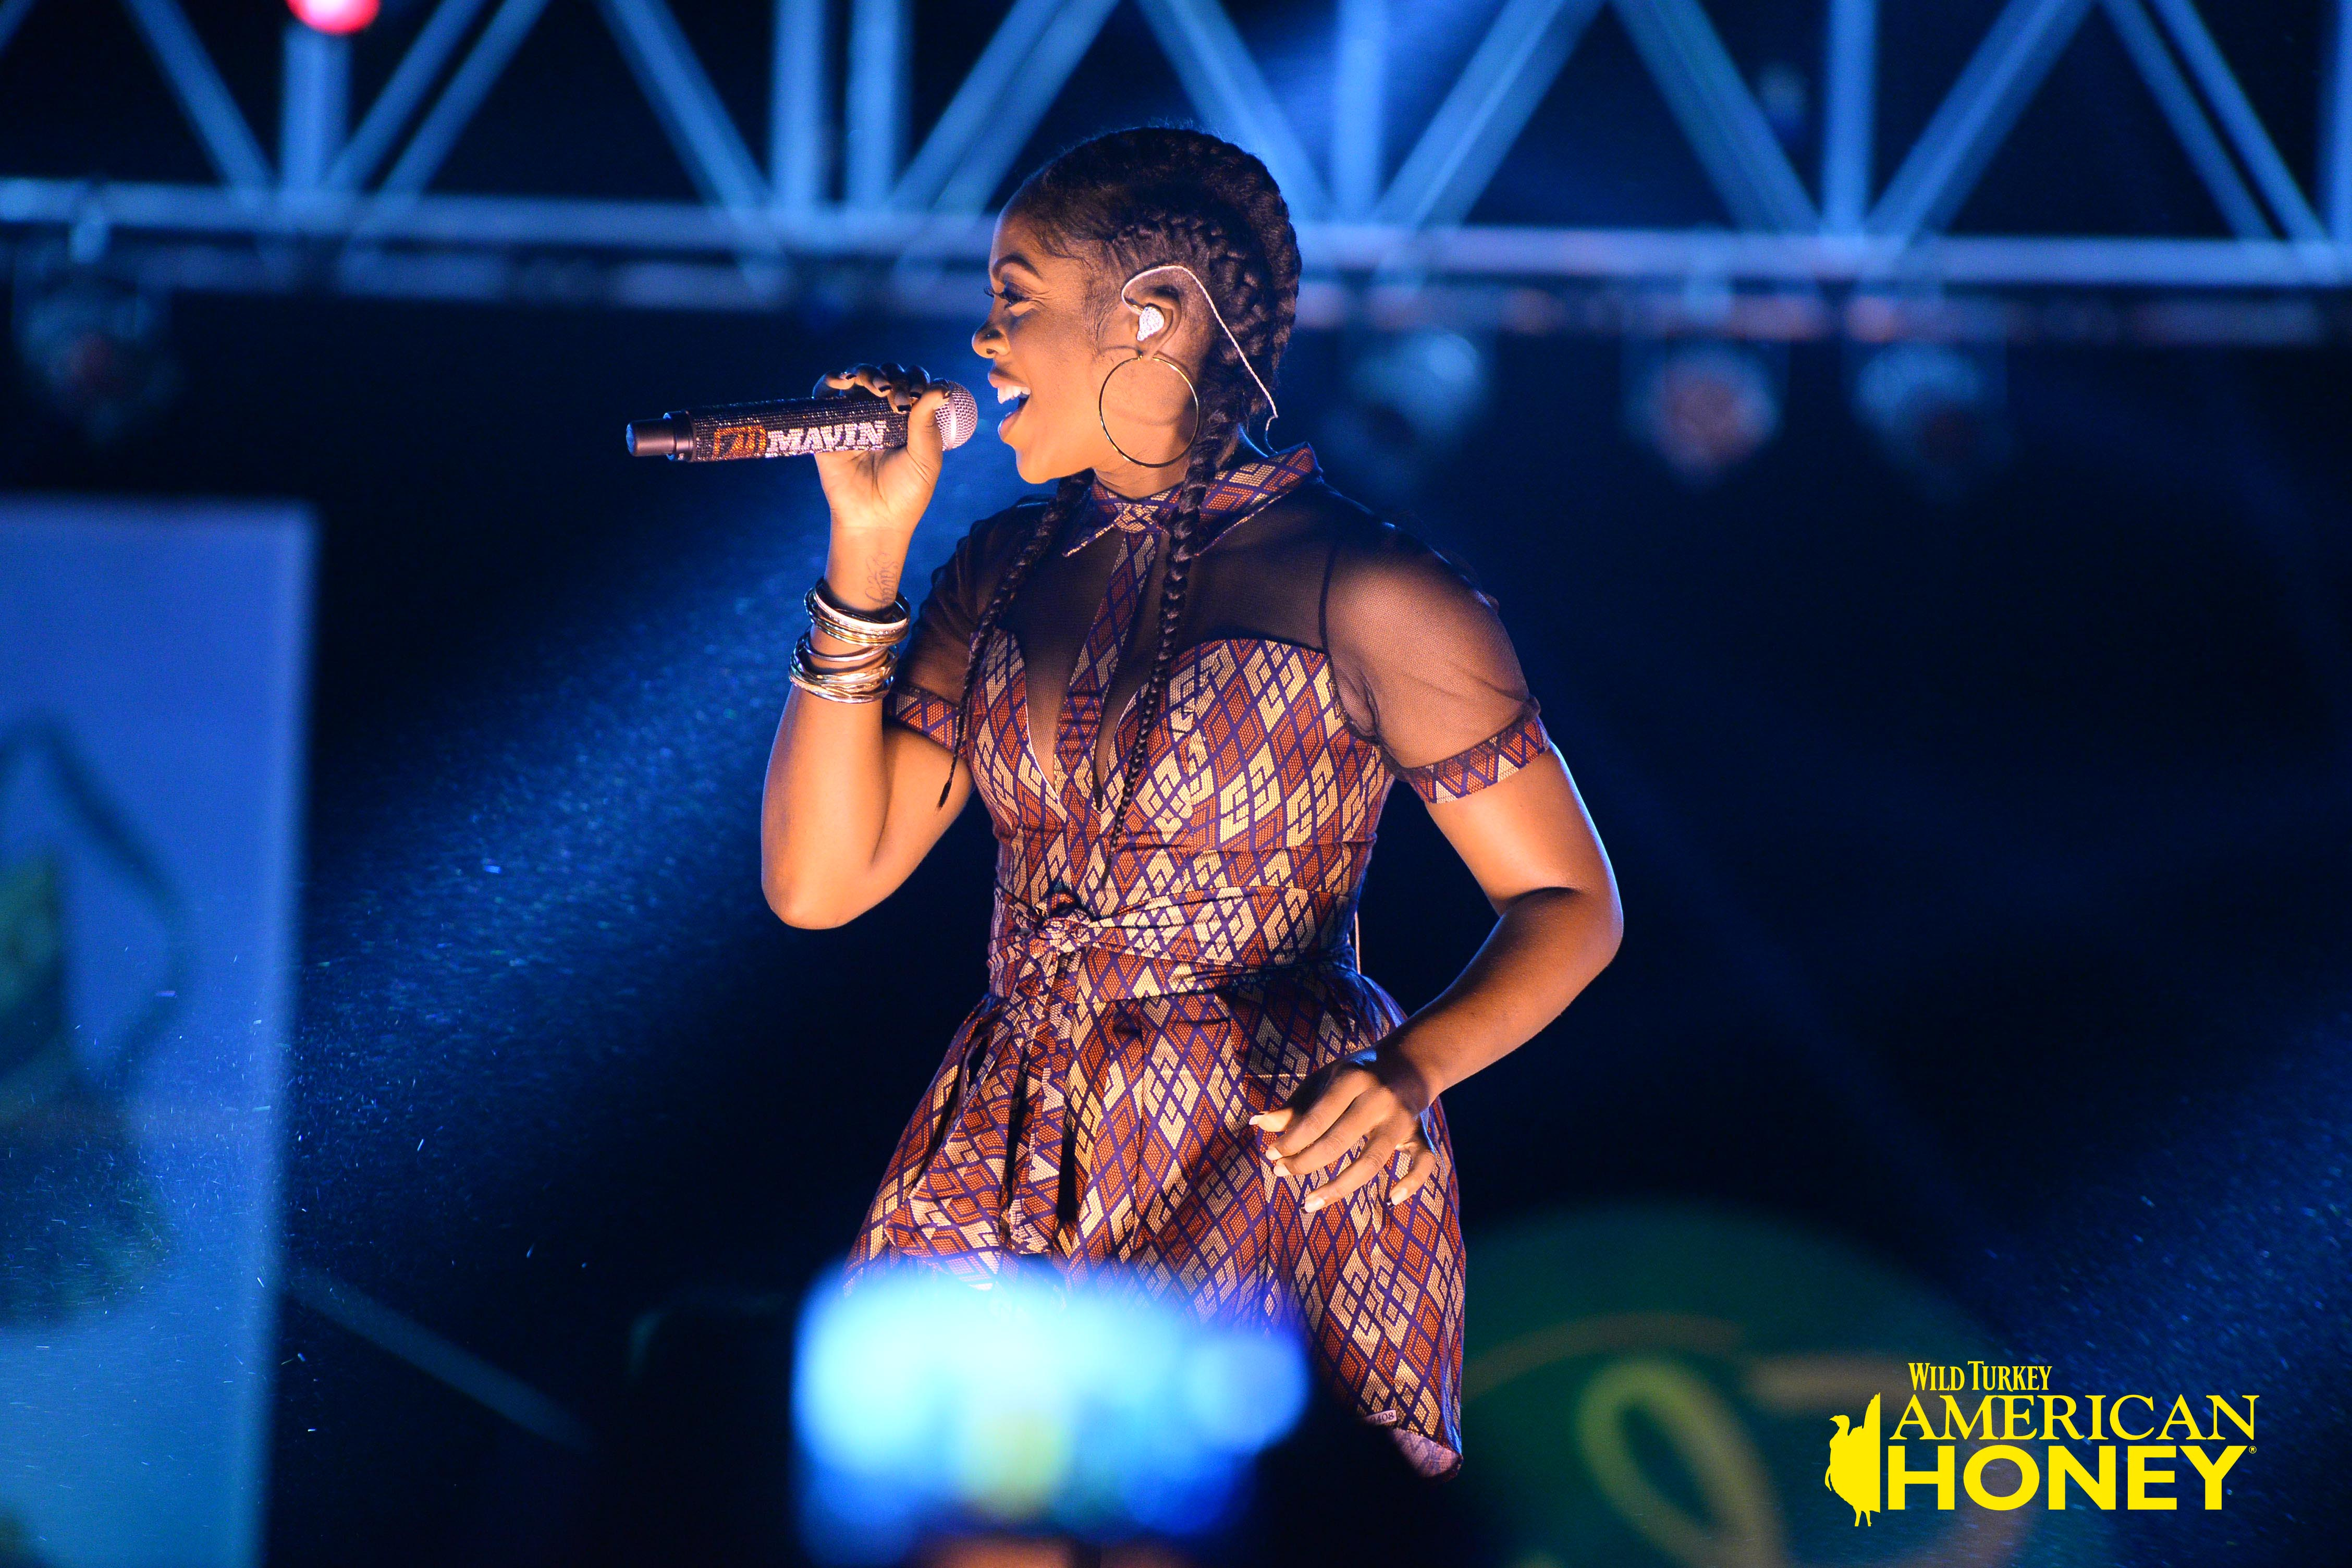 #ColdGoldAtGidiFest: Tiwa Savage, D'Banj, Yemi Alade, Others Interrupt Lagos Heatwave With Cold Gold At Gidifest 2016